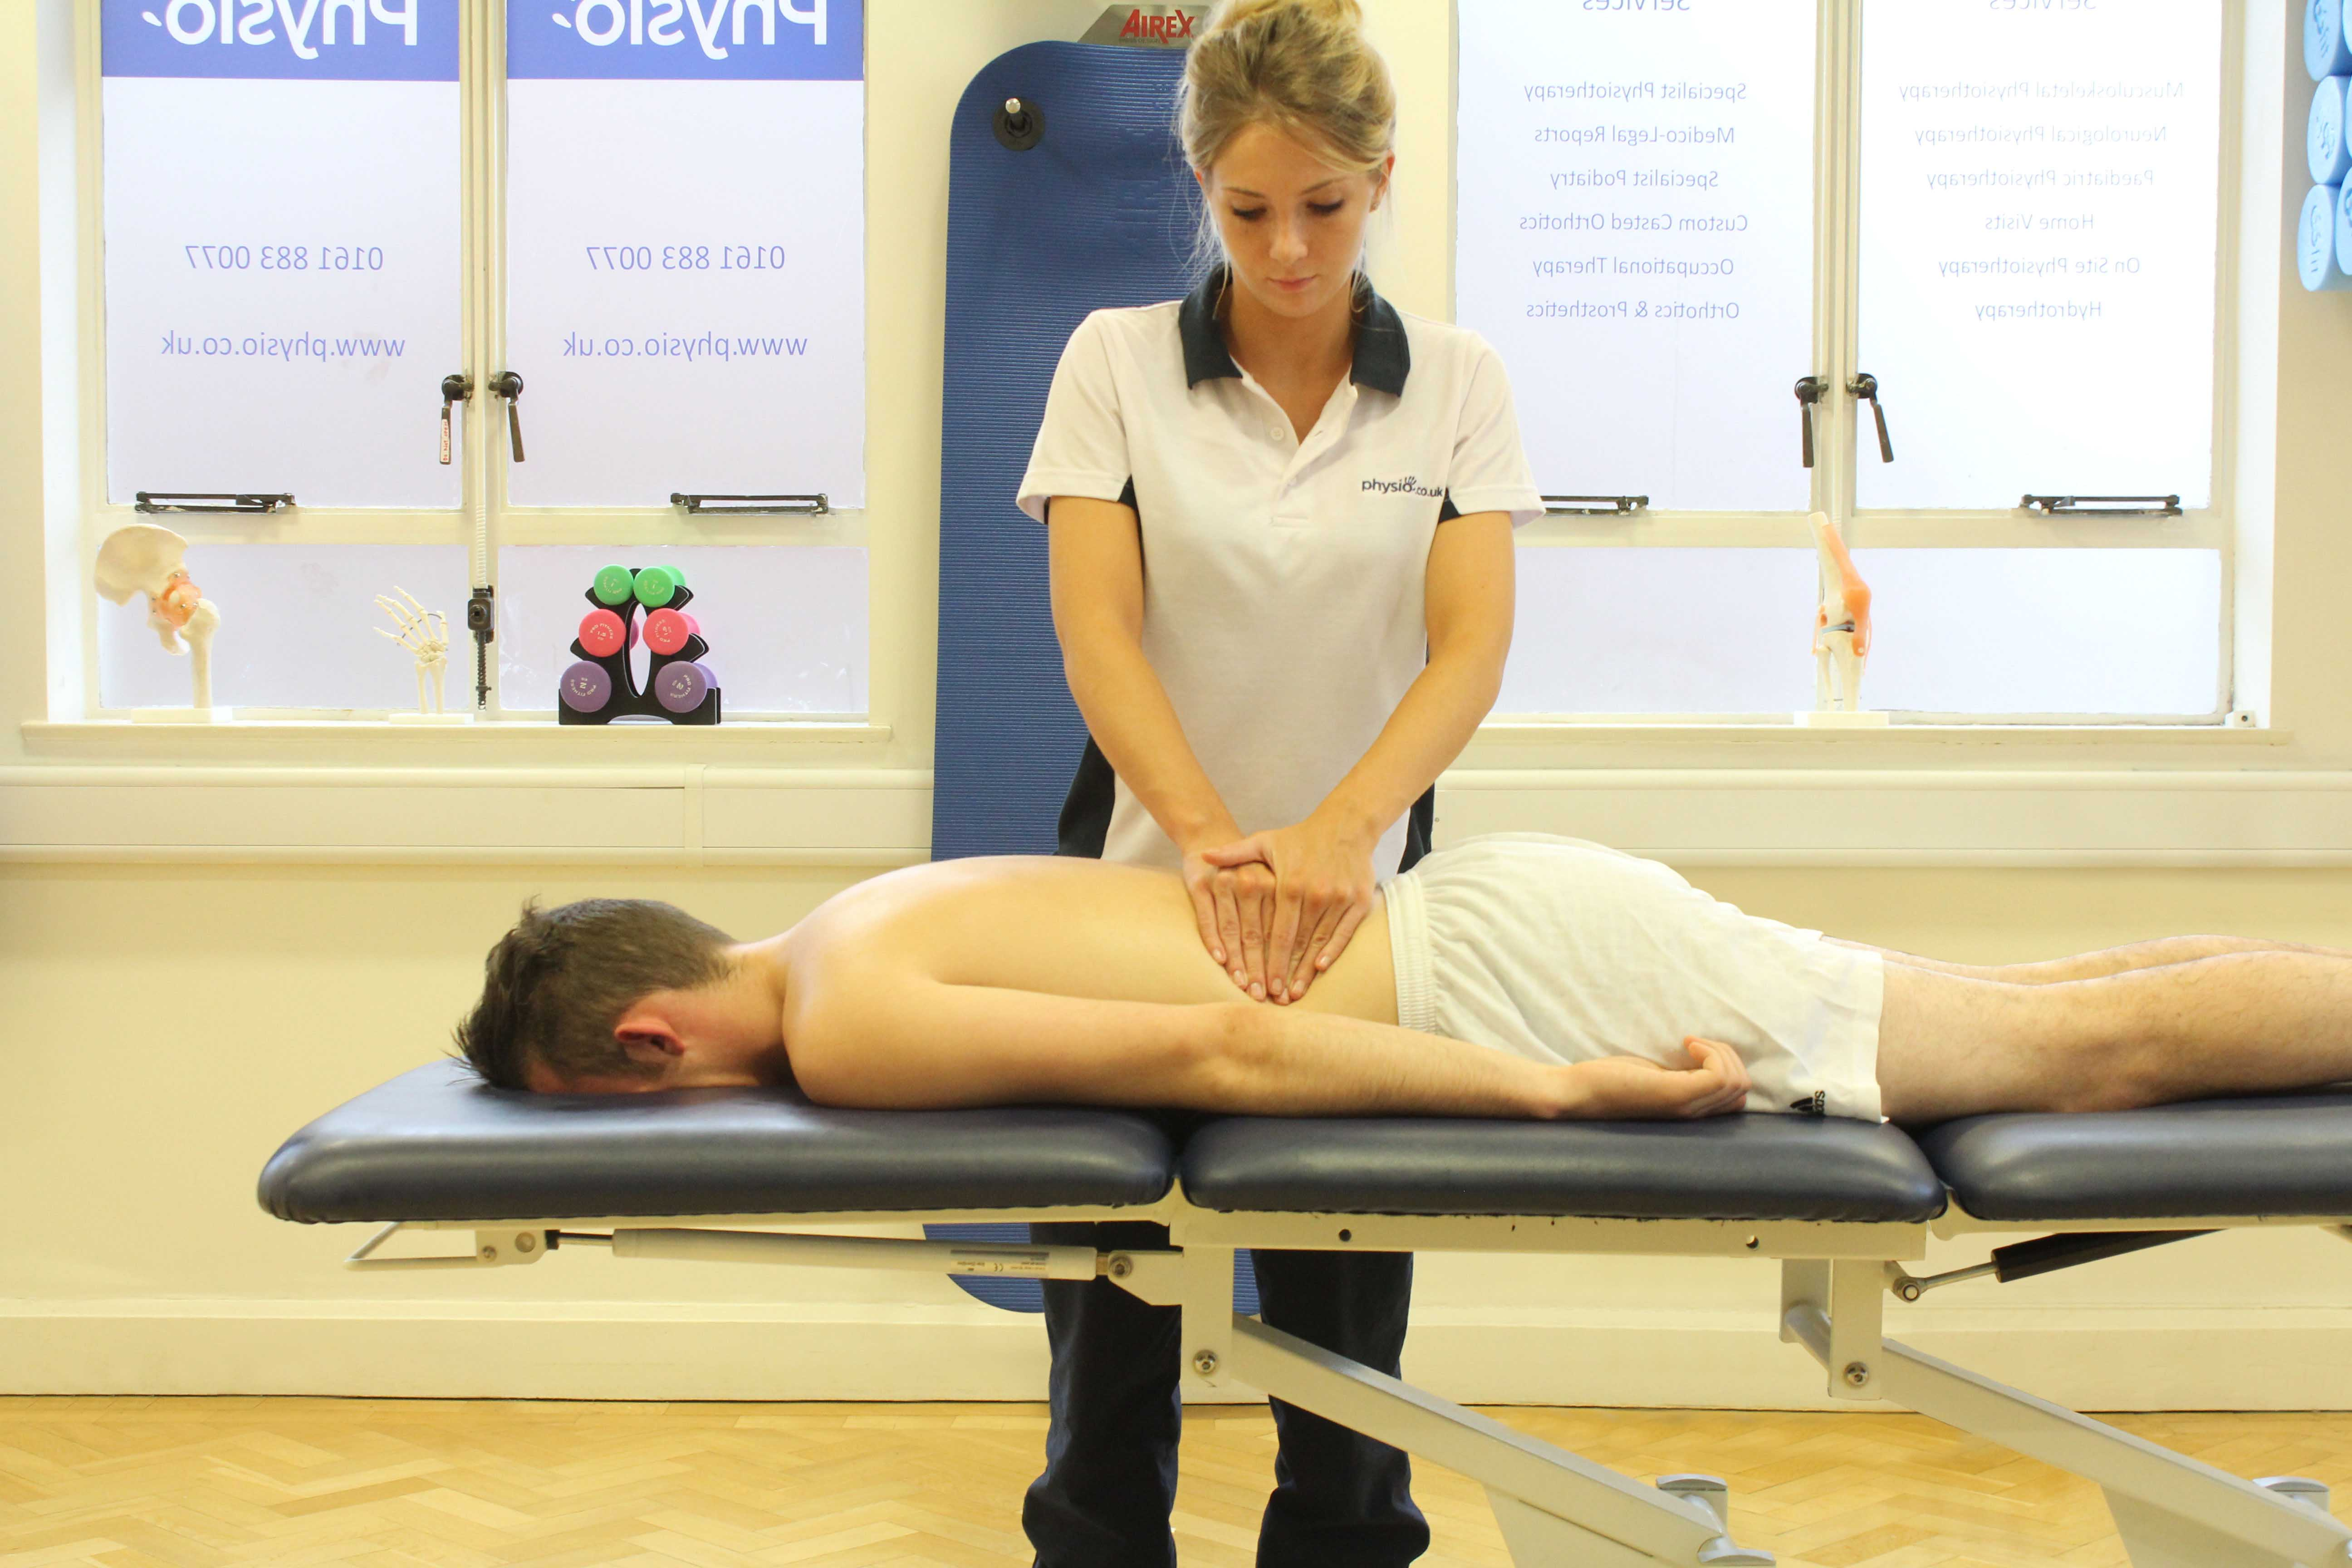 Soft tissue massage of the muscles in the lower back